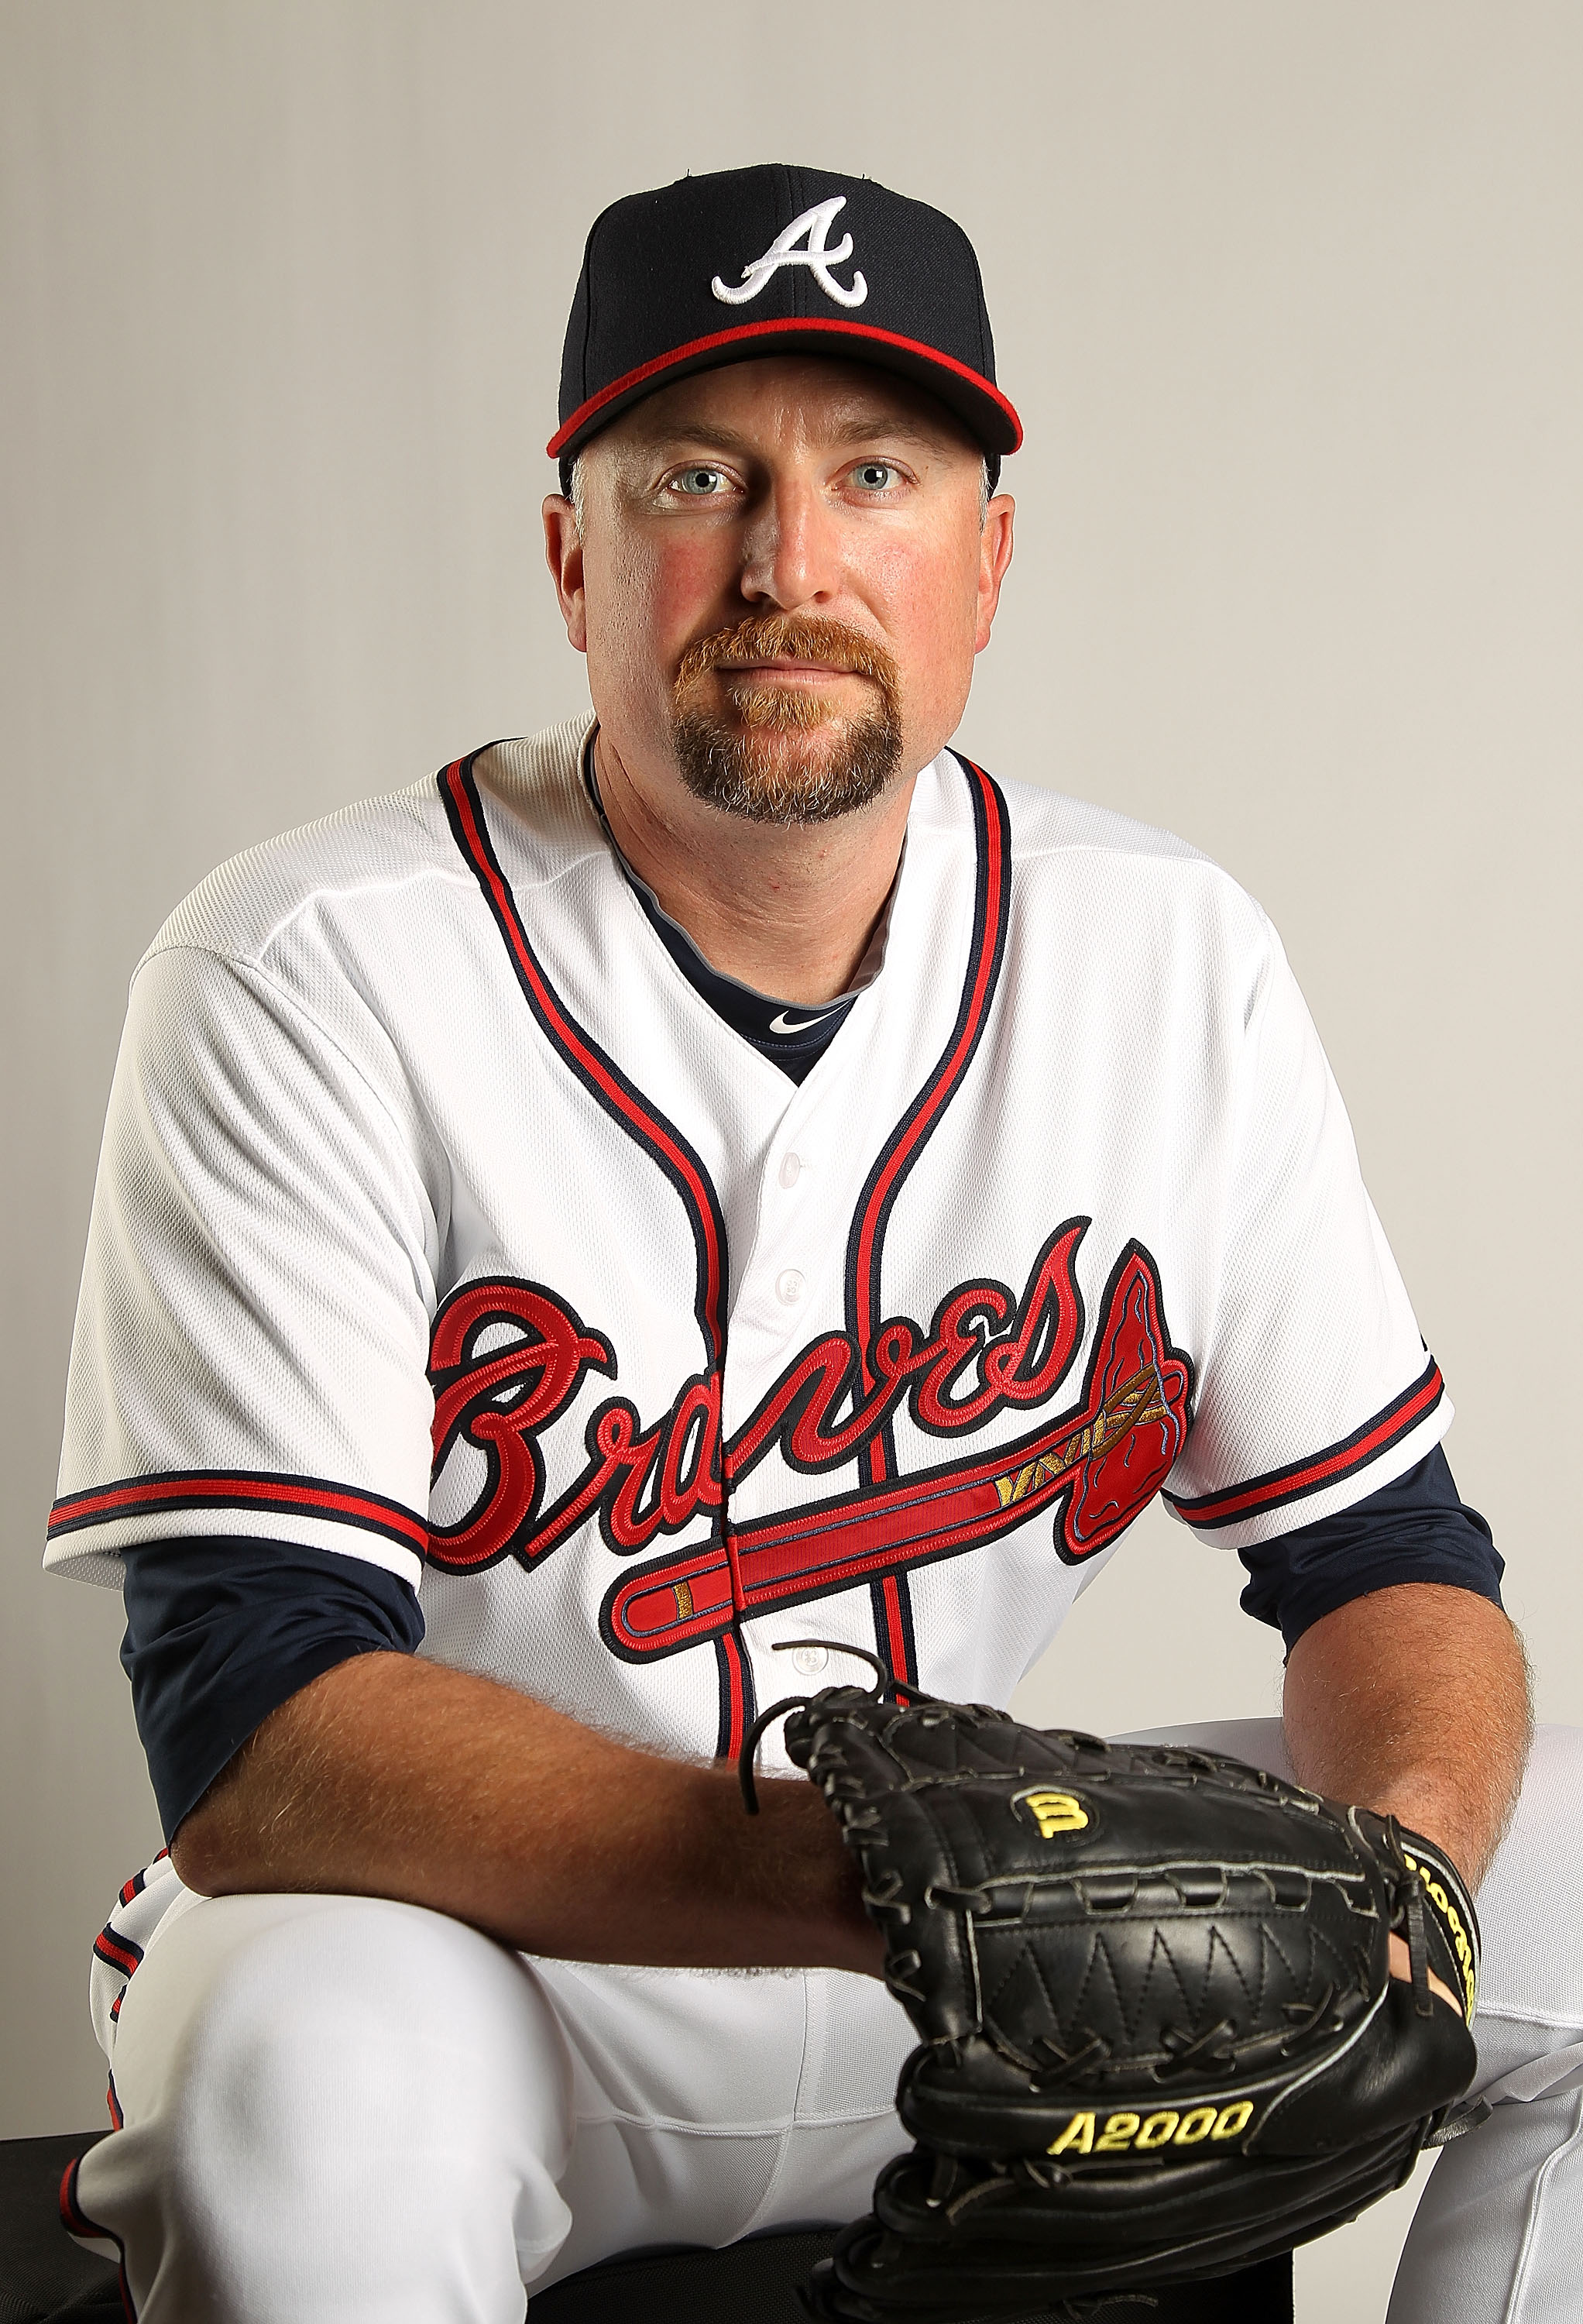 LAKE BUENA VISTA, FL - FEBRUARY 21: Scott Linebrink #19 of the Atlanta Braves during Photo Day at  Champion Stadium at ESPN Wide World of Sports Complex on February 21, 2011 in Lake Buena Vista, Florida.  (Photo by Mike Ehrmann/Getty Images)